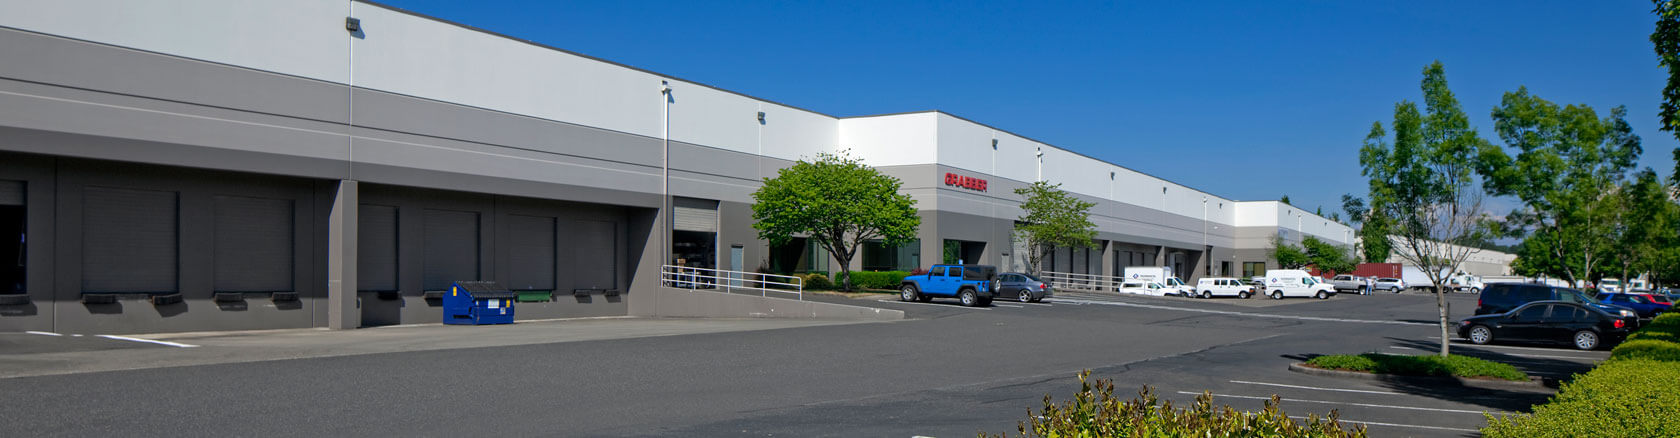 148th Airport Way Industrial Park